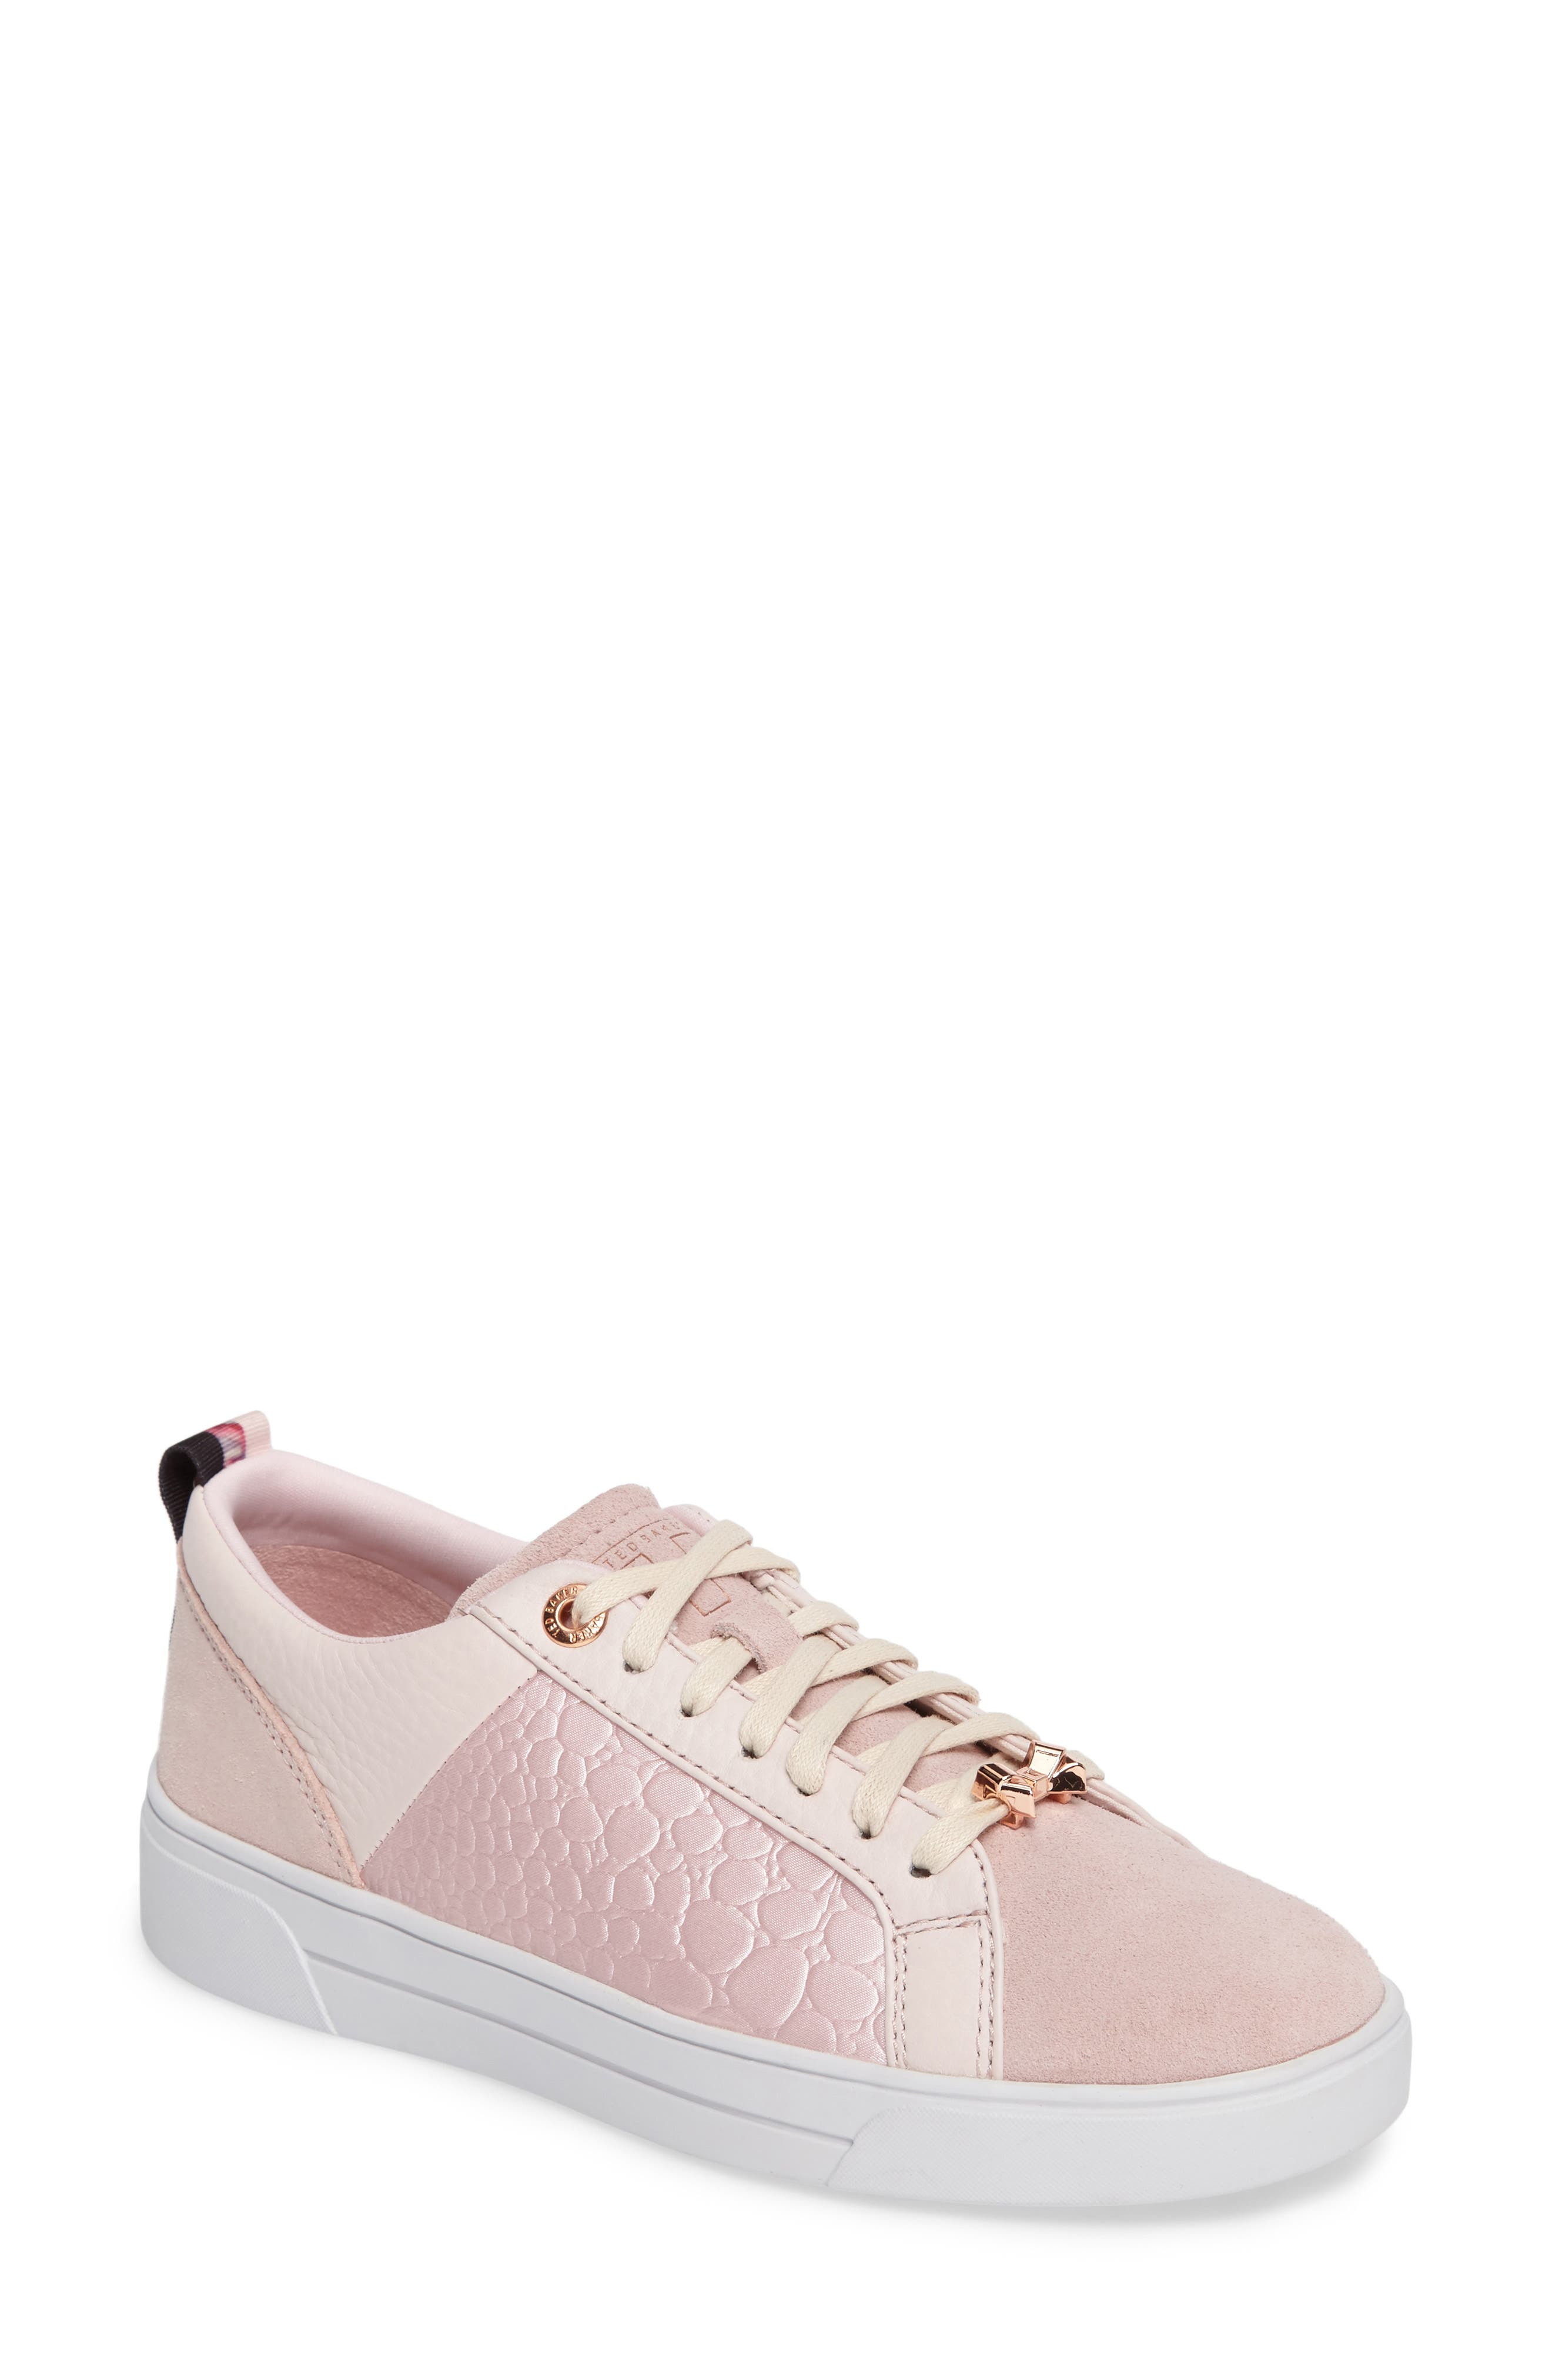 Kulei Sneaker,                         Main,                         color, Light Pink Leather